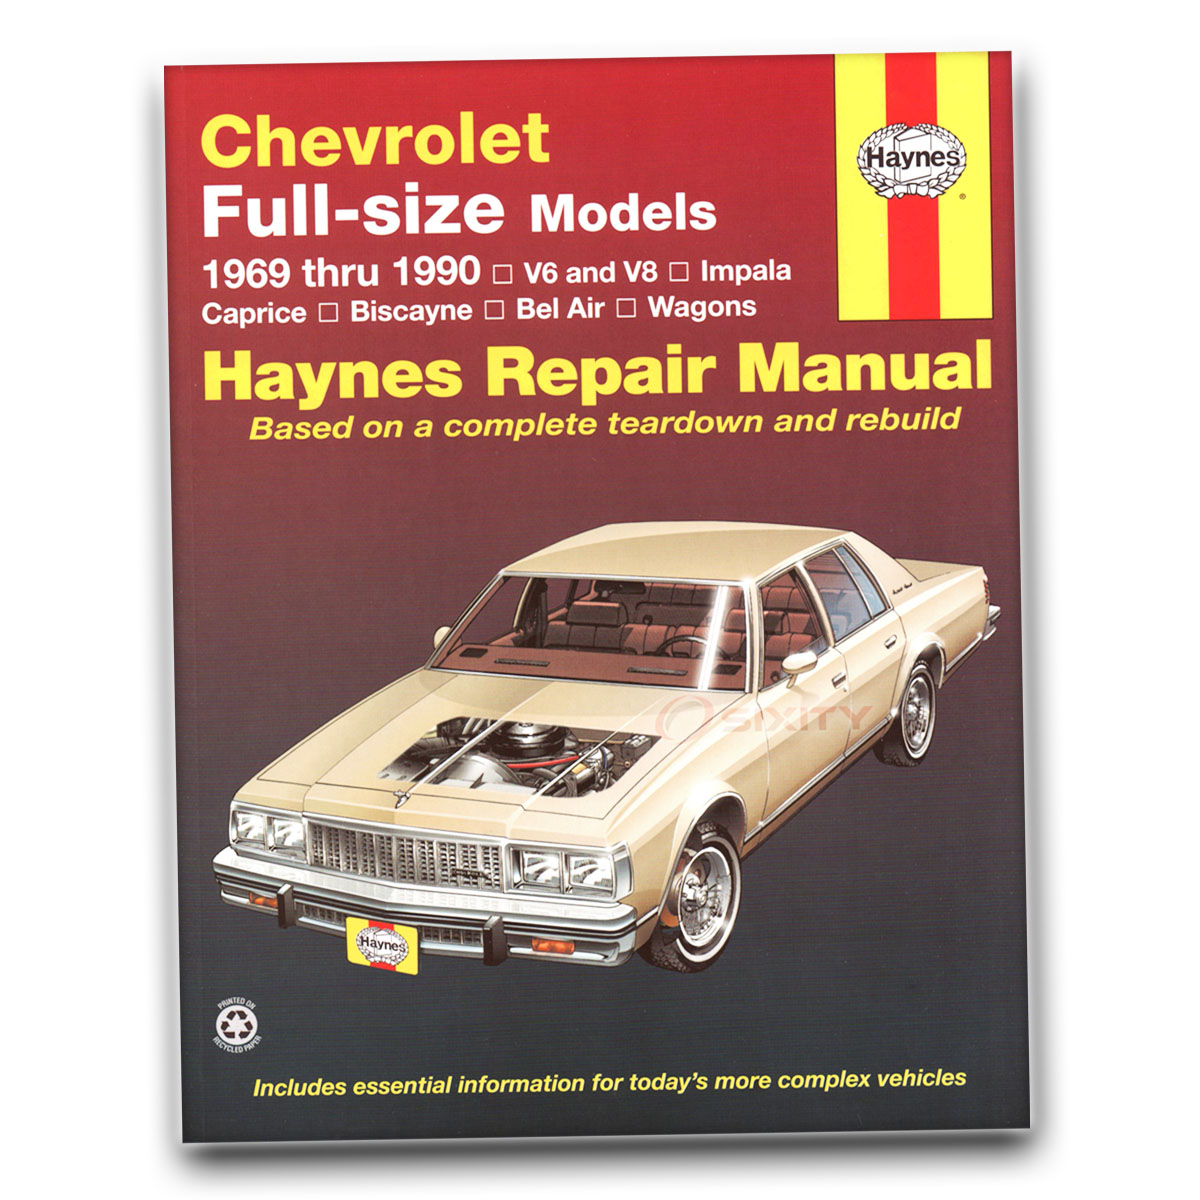 SX250 Repair Book